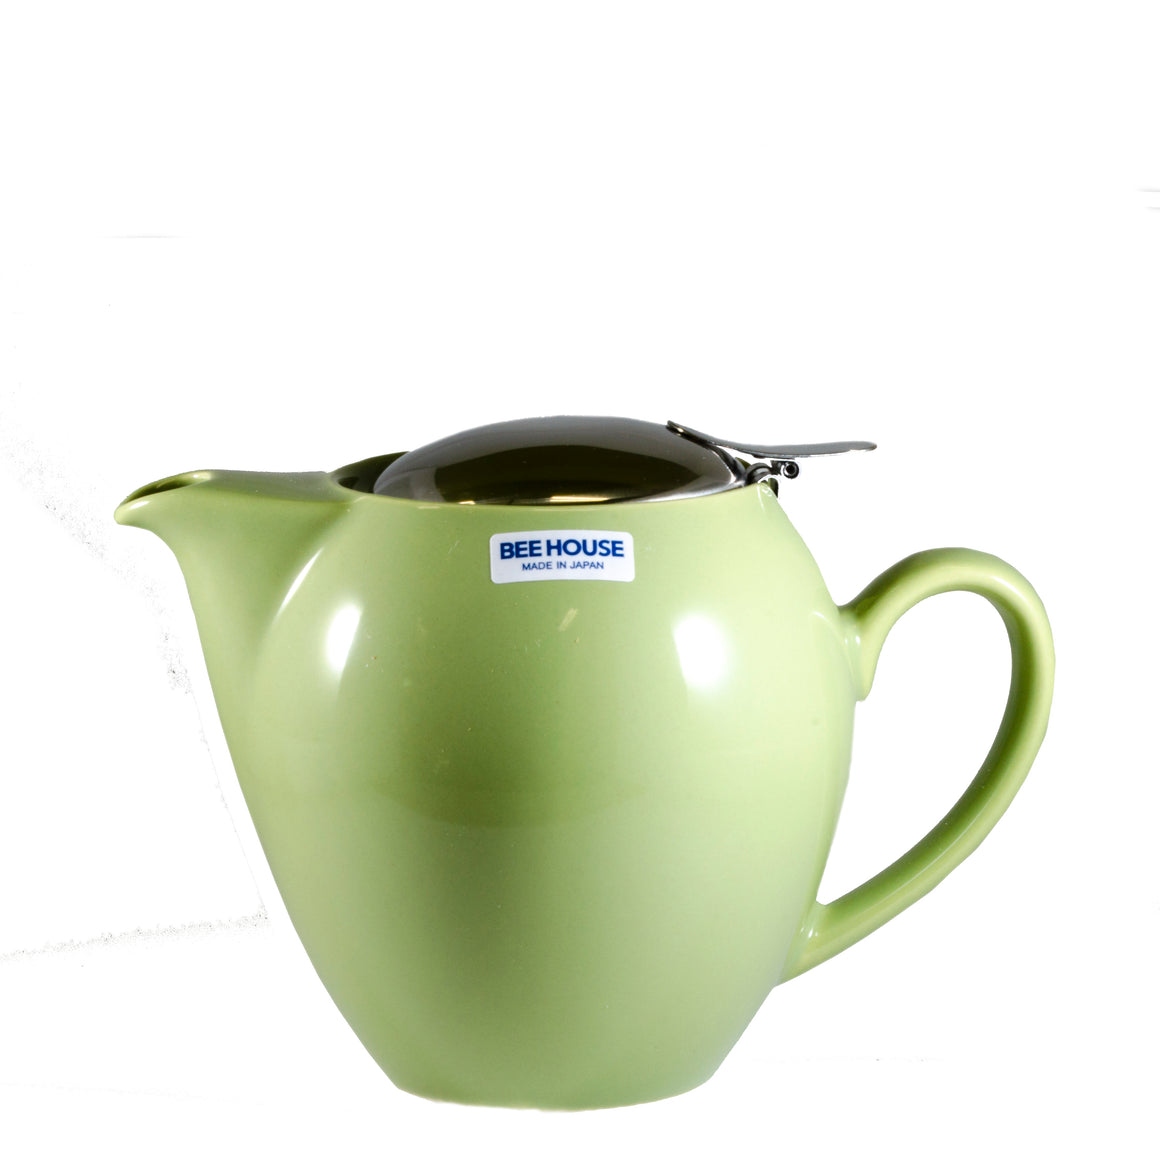 Bee House 3 Cup Teapot